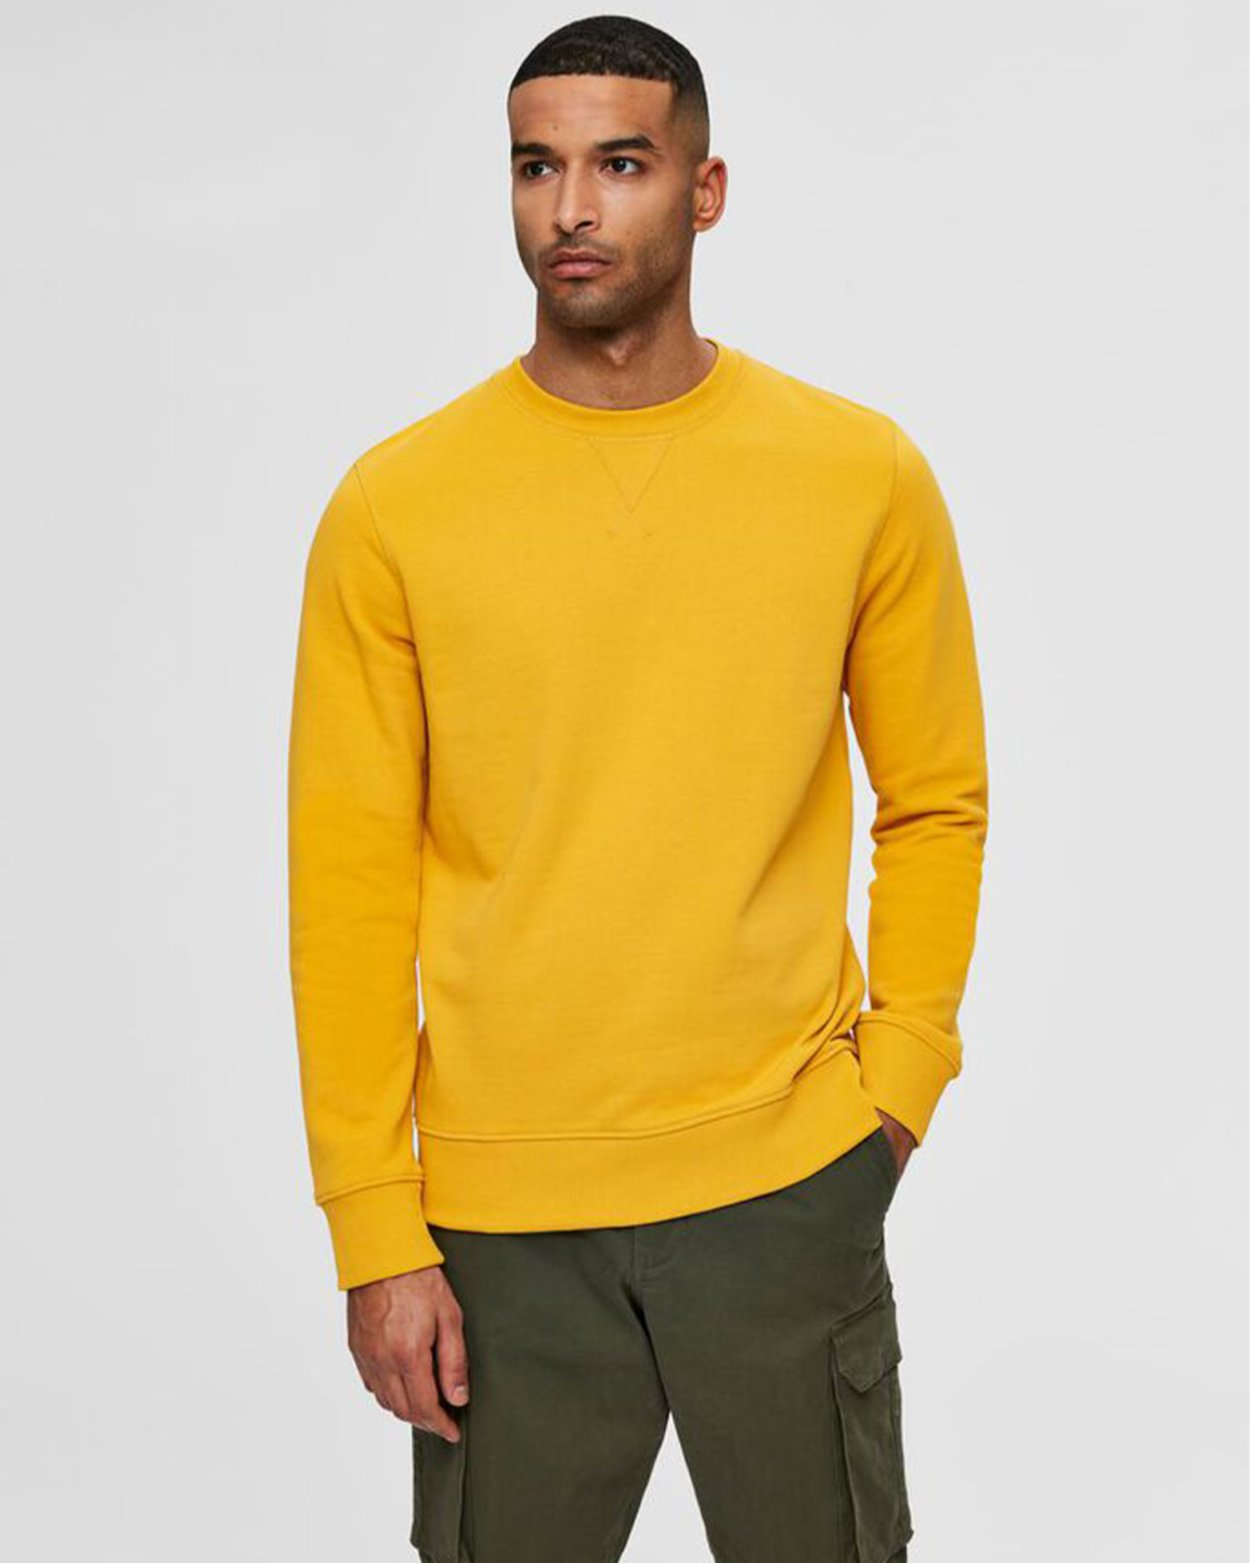 Jason Crew Neck Sweater